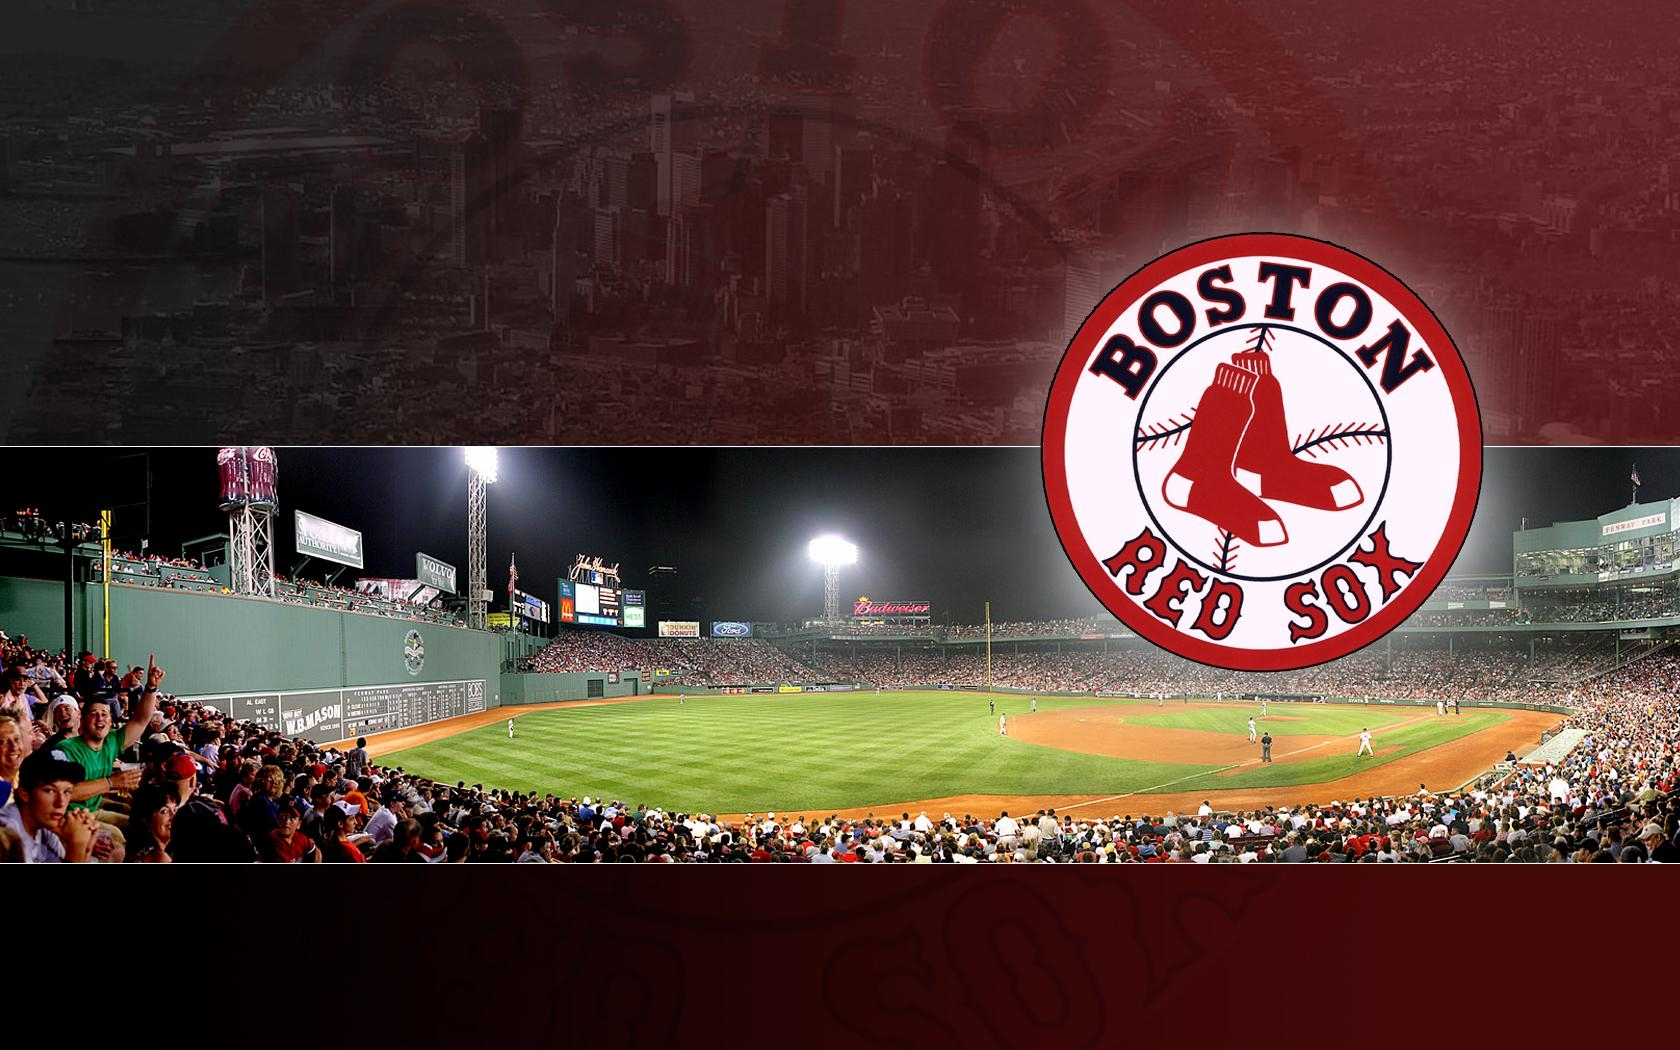 Boston Red Sox Wallpapercrazydi4Mond On Deviantart In Red Sox Wall Art (View 16 of 20)